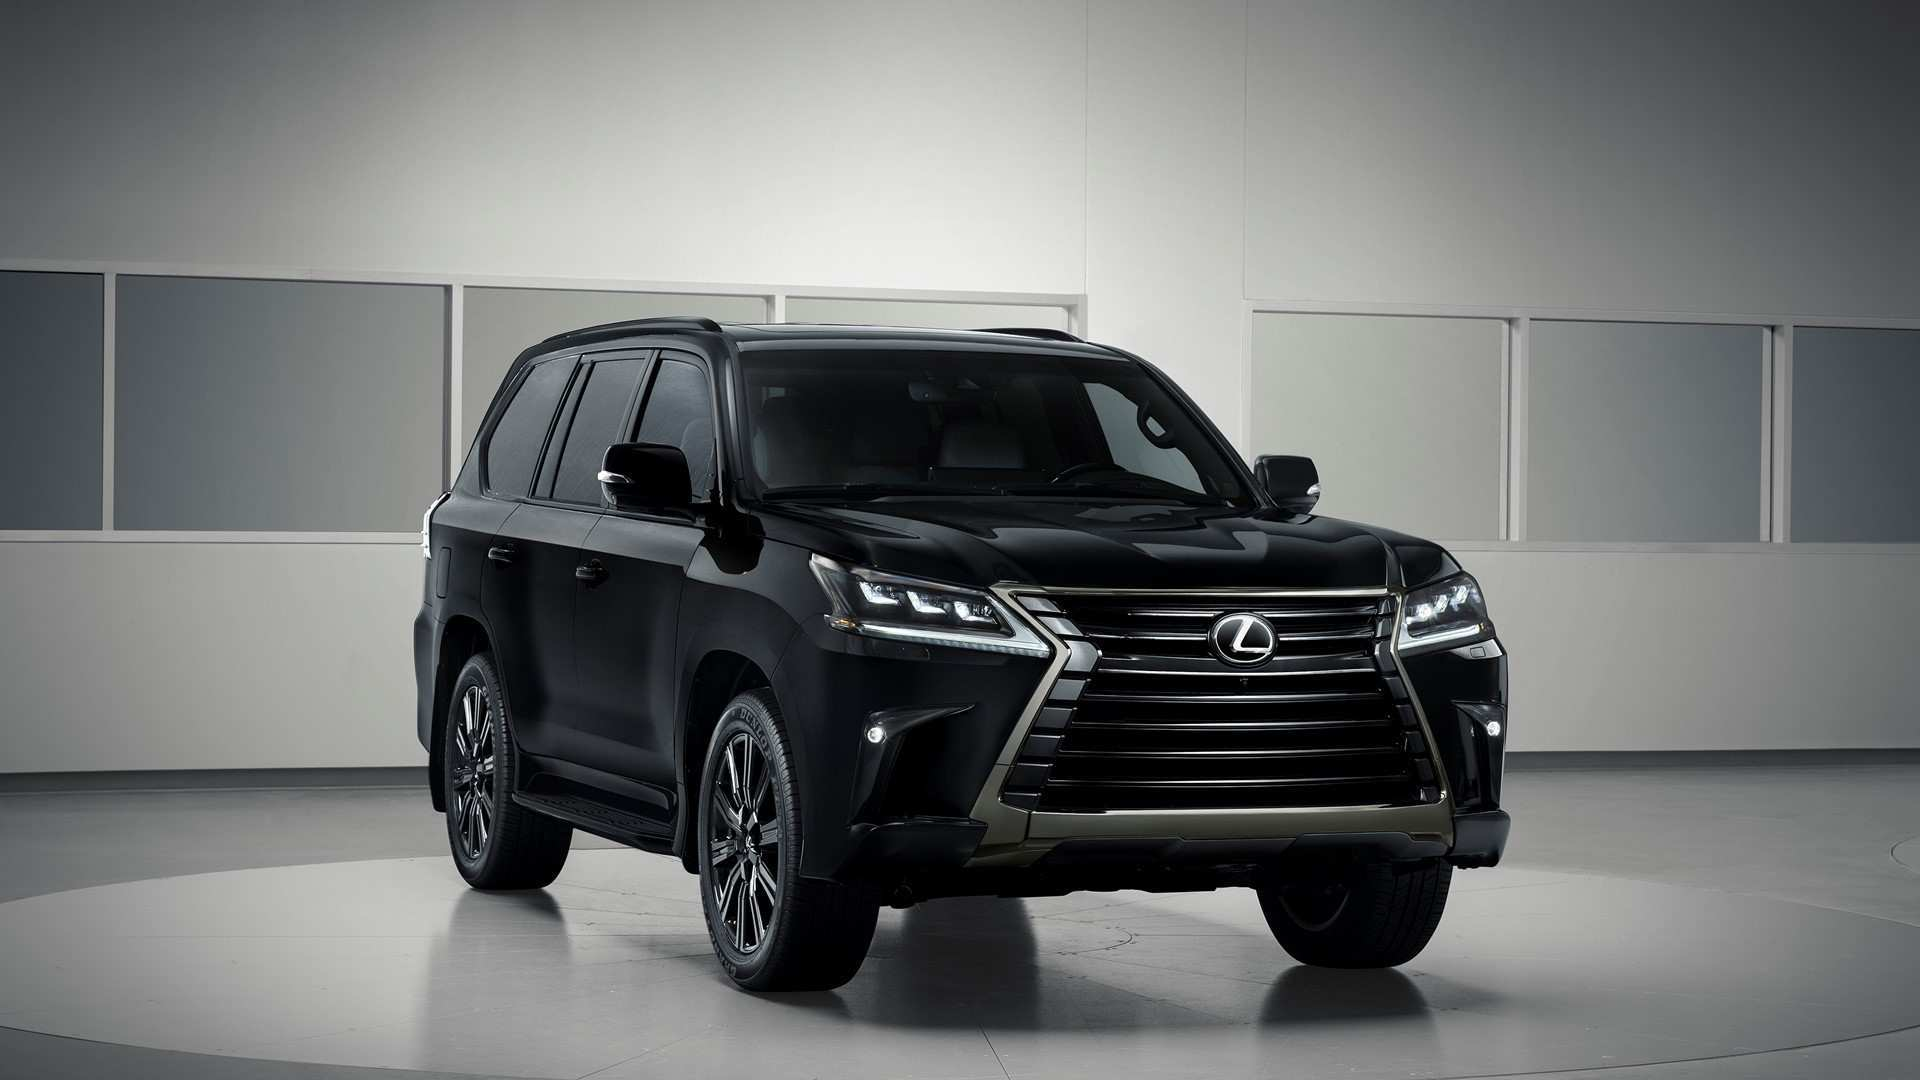 54 New The Lexus 2019 Lx Redesign And Price Pricing for The Lexus 2019 Lx Redesign And Price